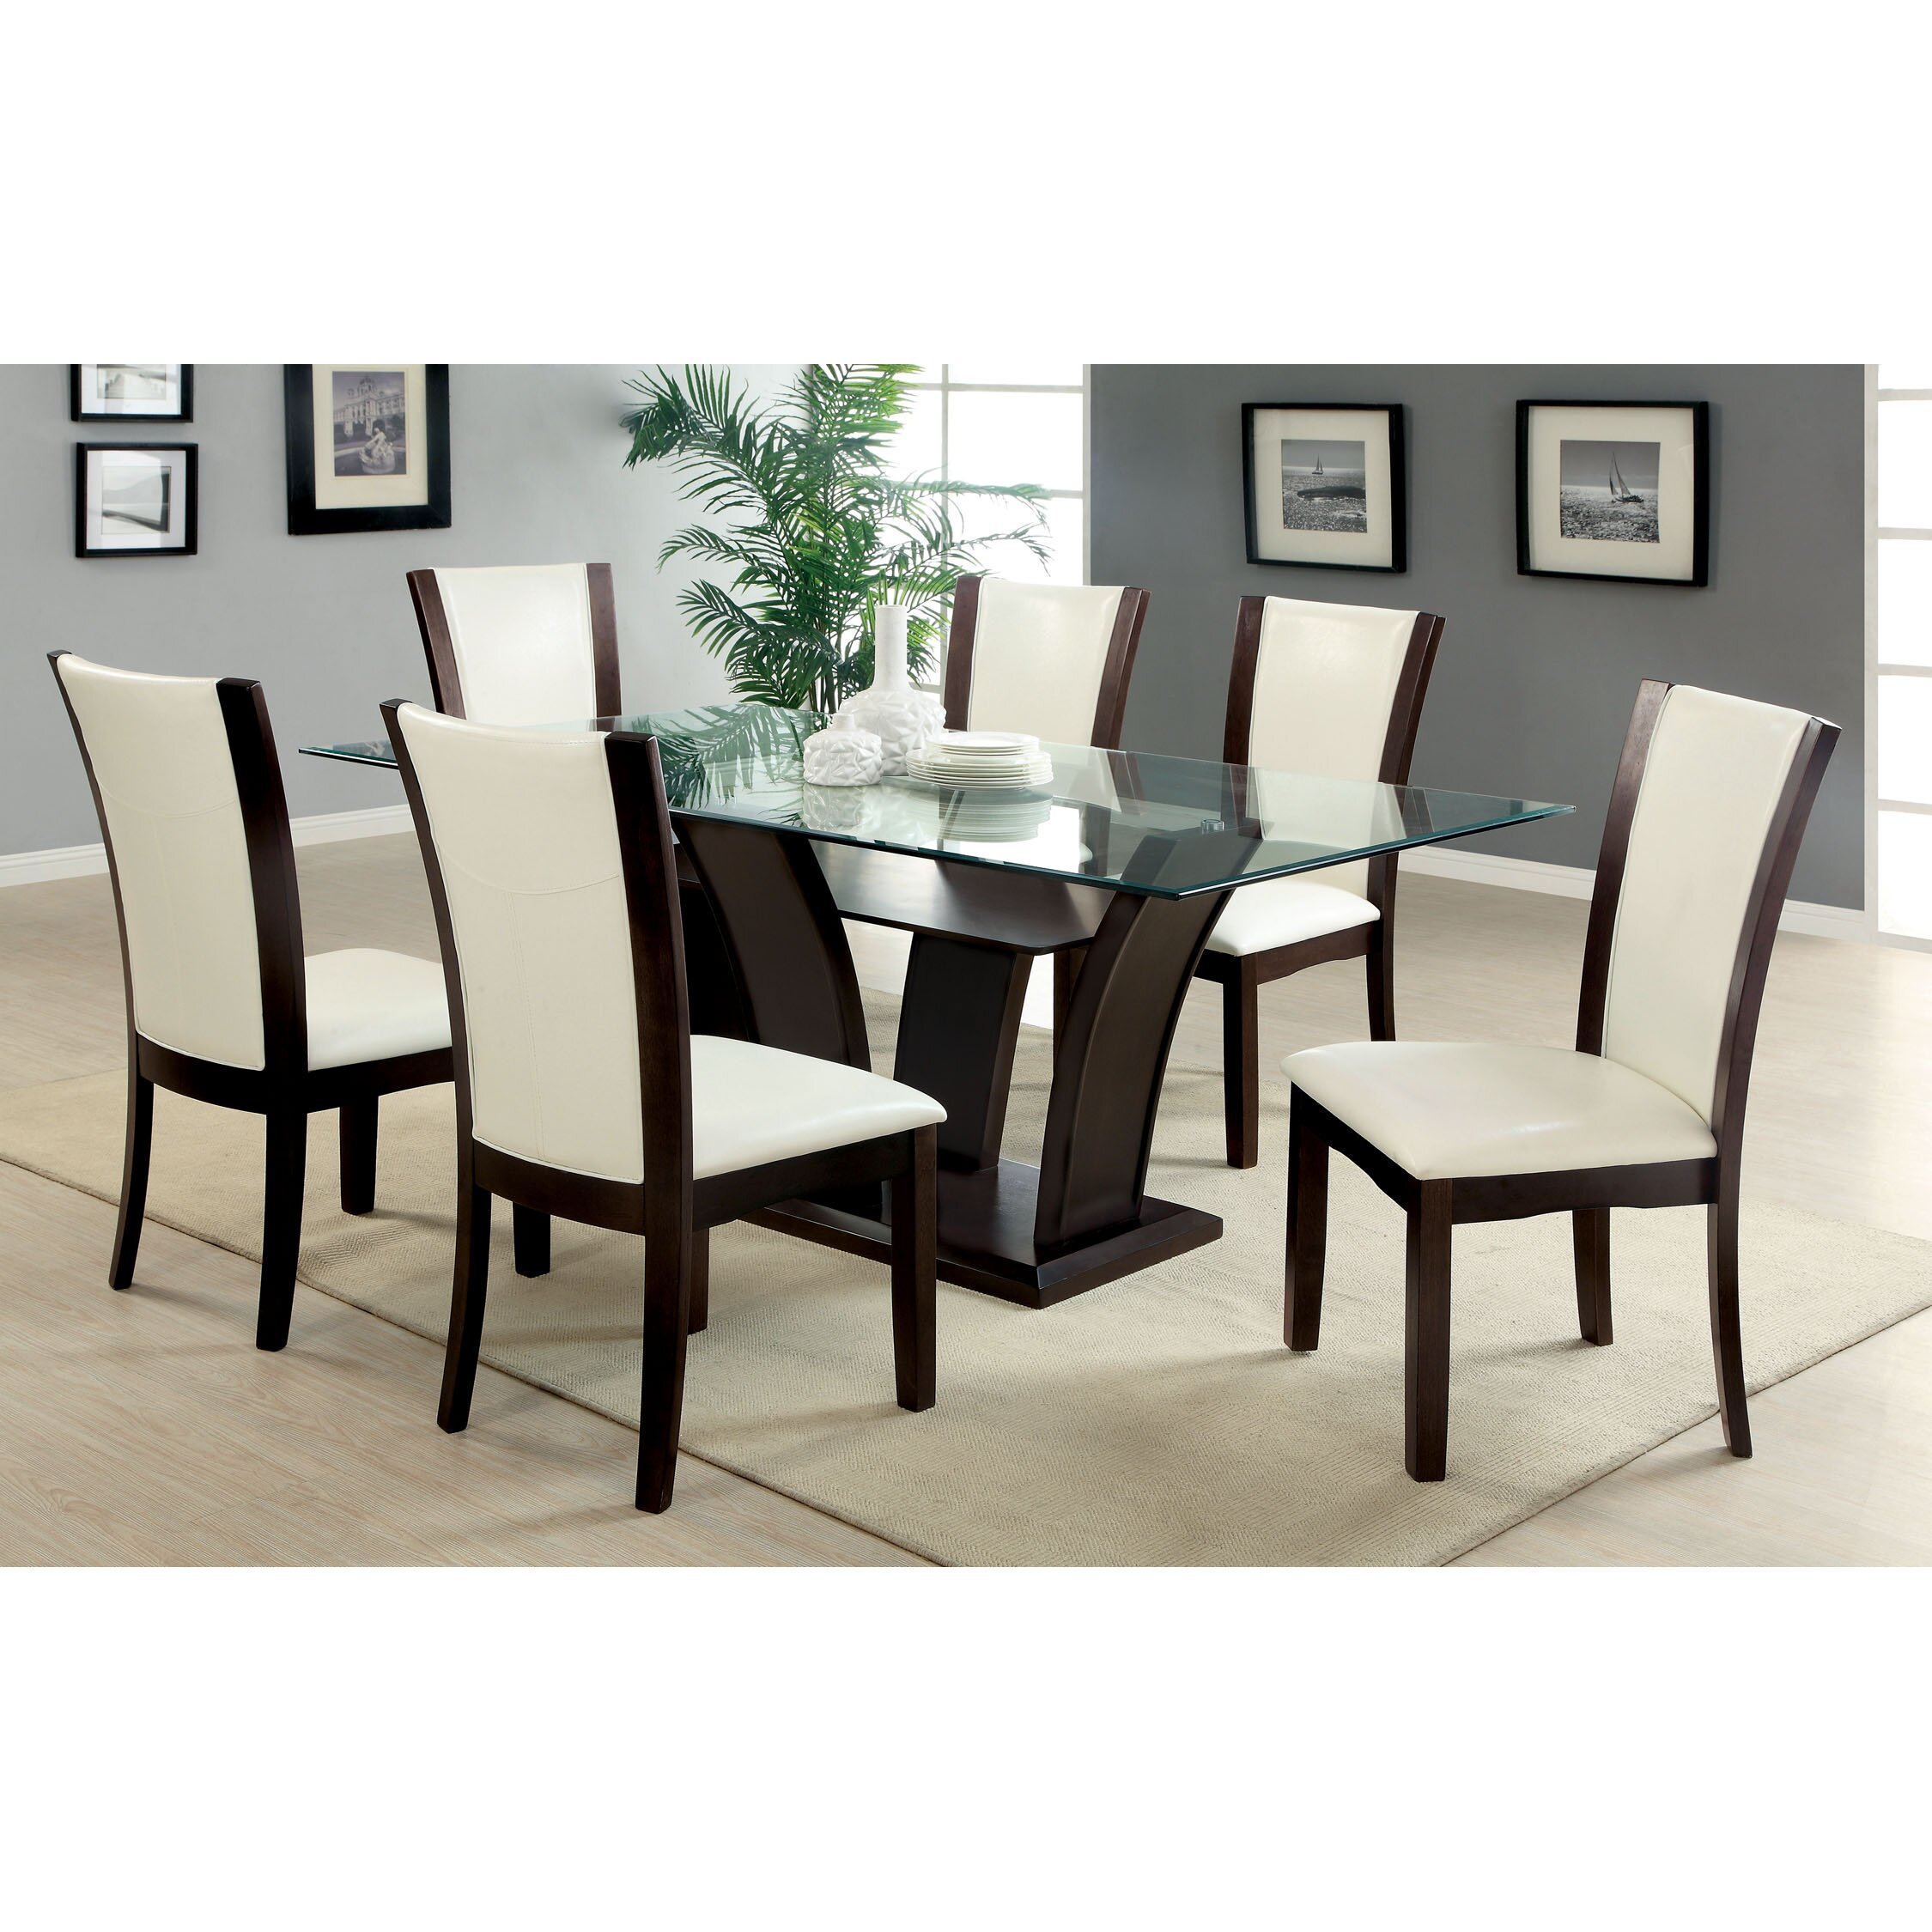 Hokku Designs Carmilla 7 Piece Dining Set Reviews Wayfair: dining set design ideas